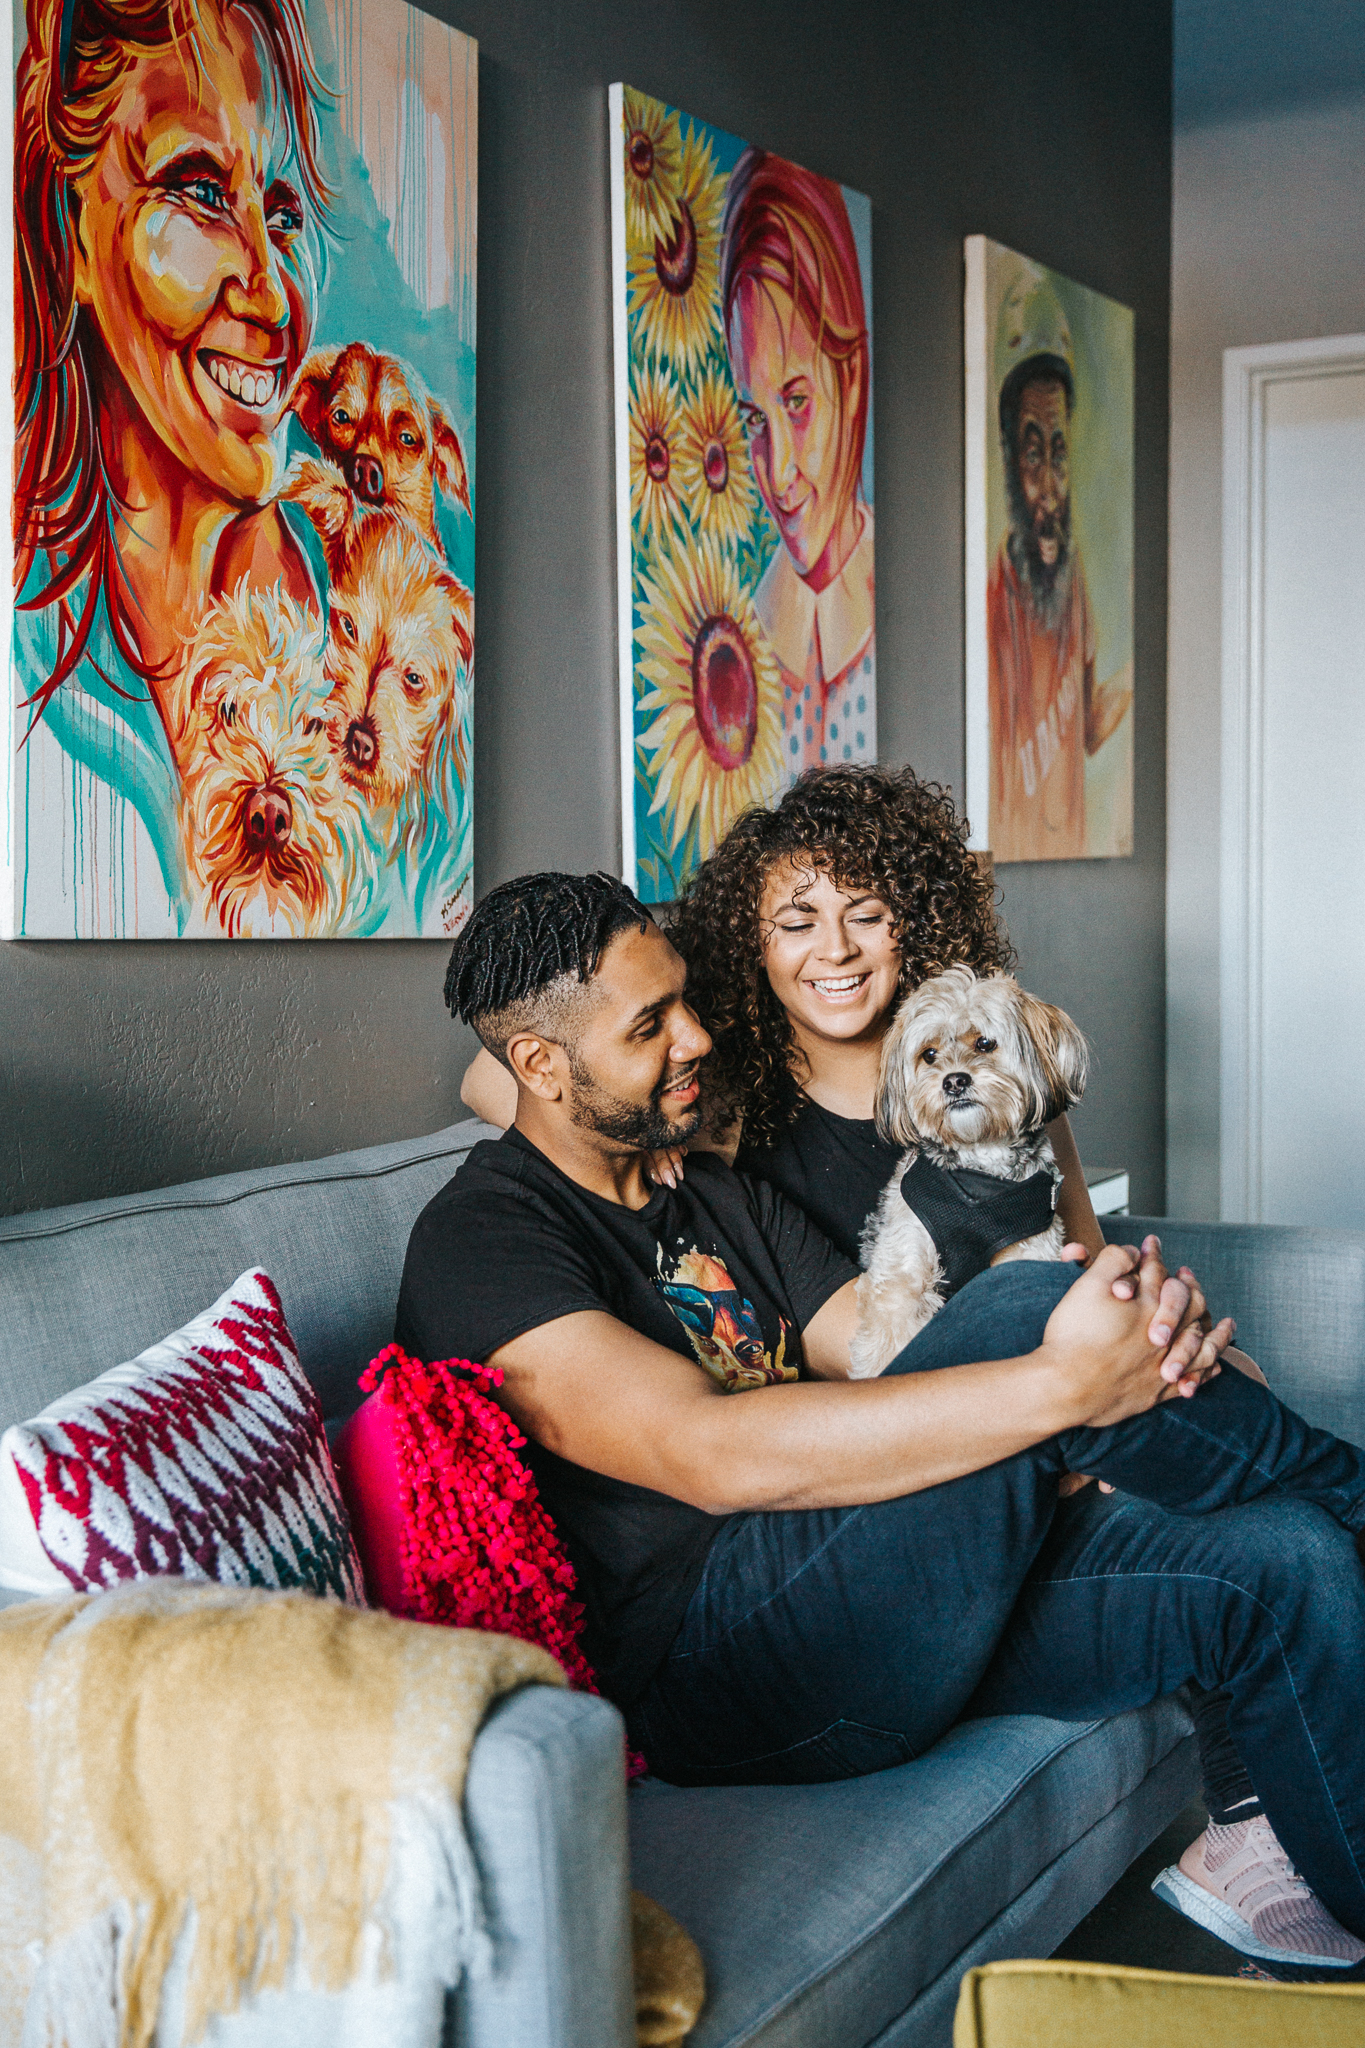 Brian and Vanessa Peterson sitting on couch with dog